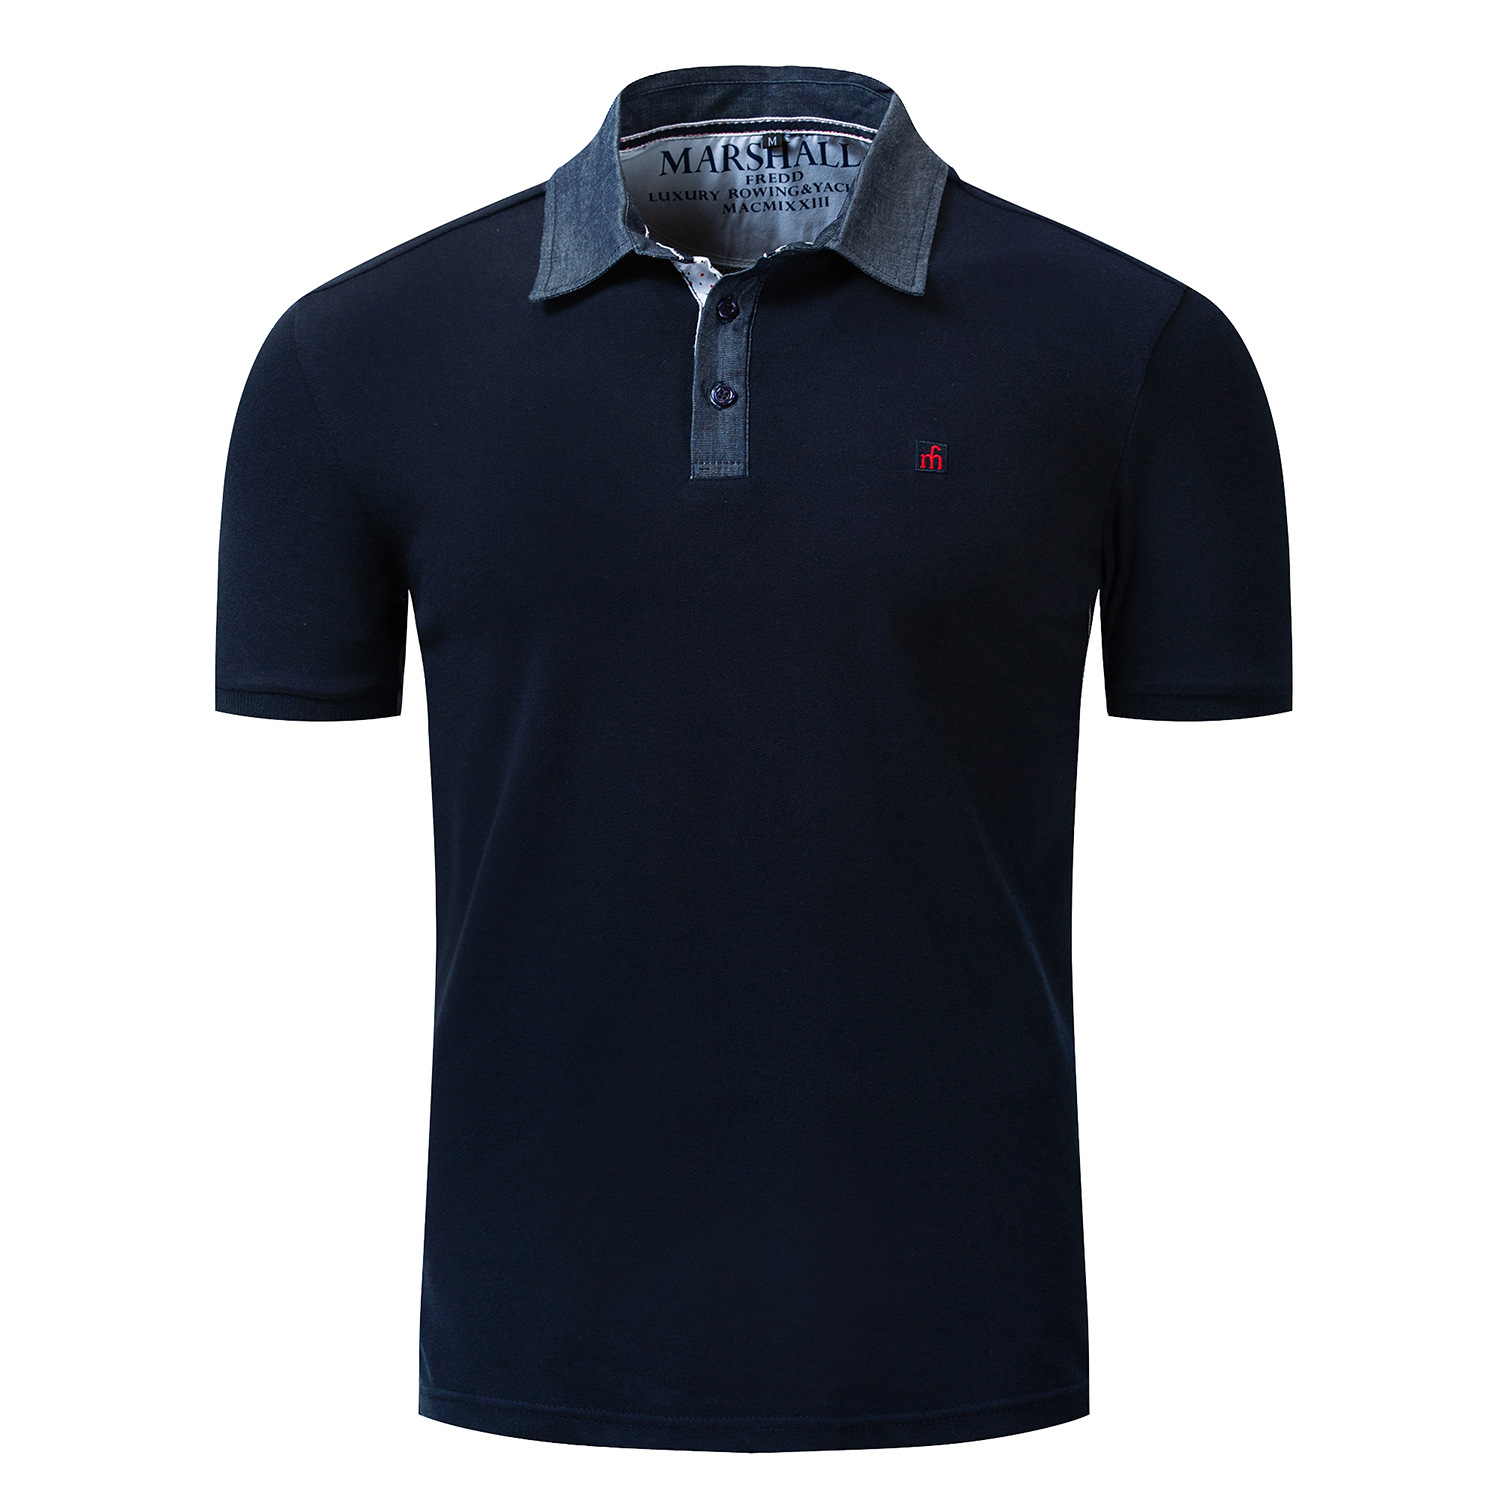 New   Polo   Shirts for Men 100% Cotton Classic Pique Slim-Fit   Polos   Shirt Hombres Camisas   Polo   Casual Short Sleeve Top 037